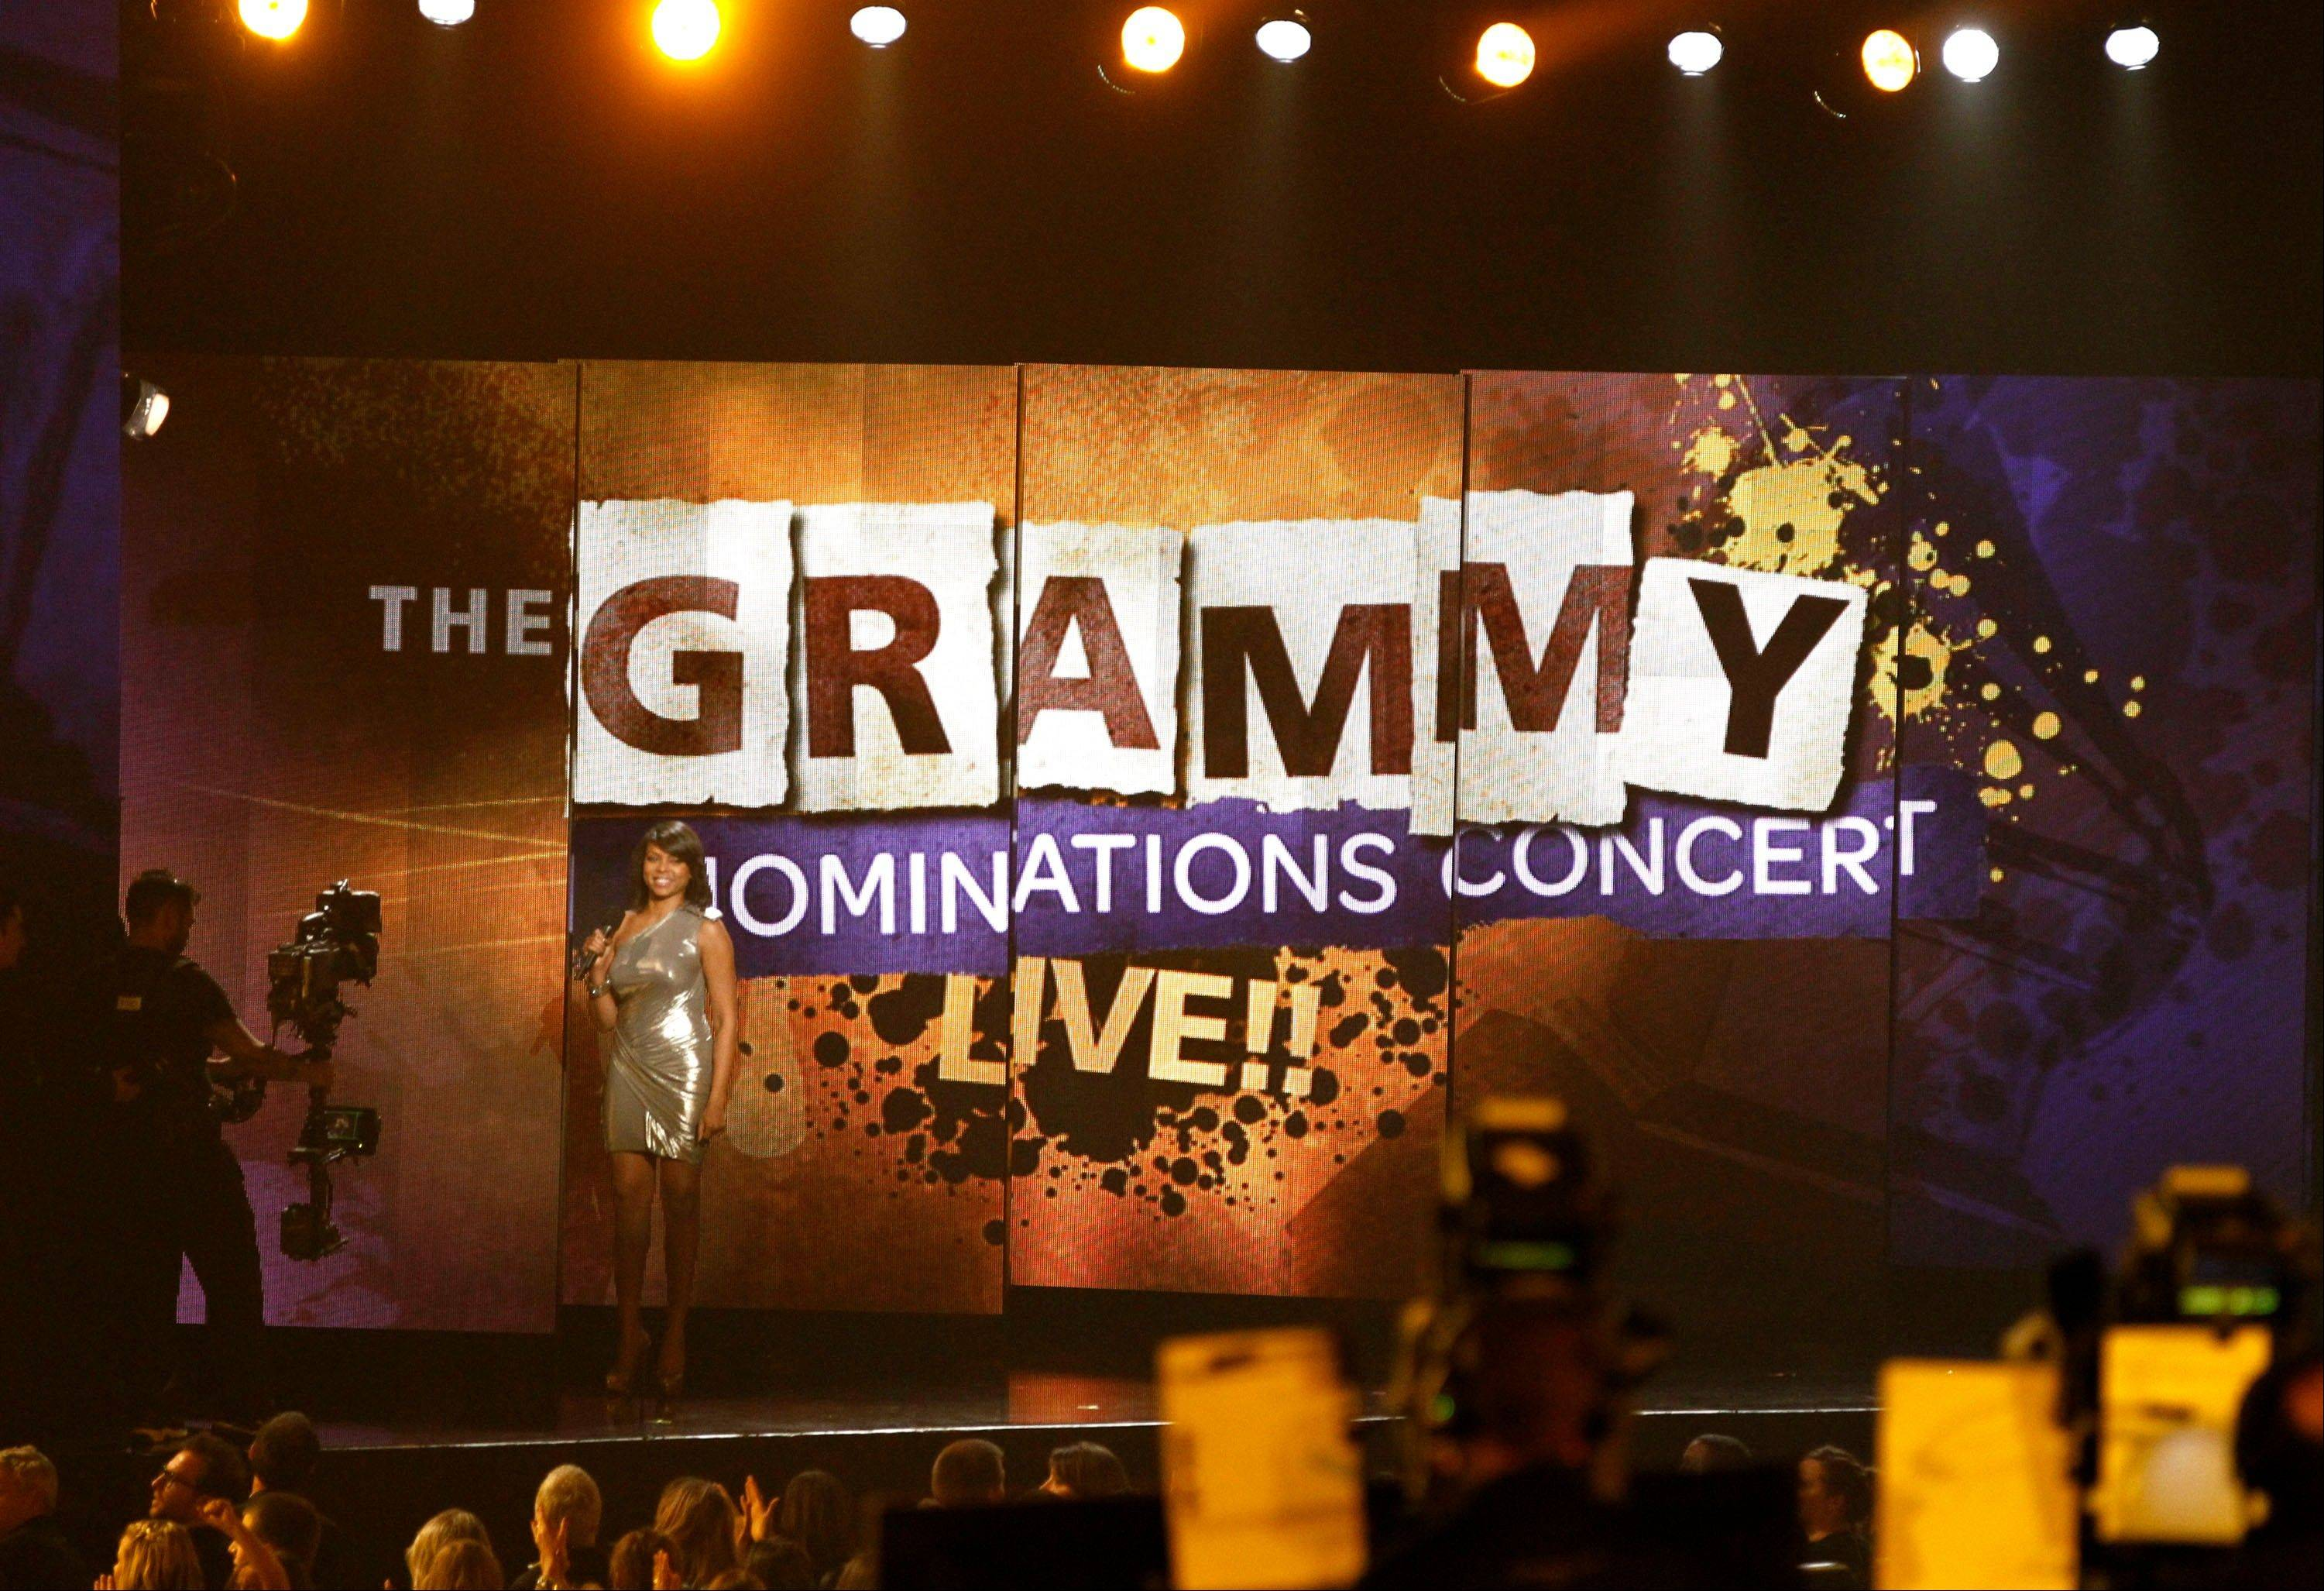 Taraji P. Henson last year announced the Grammy song of year nominations in a concert in Los Angeles. The National Academy of Recording Arts & Sciences will have its annual live nominations concert special in Nashville Dec. 5.